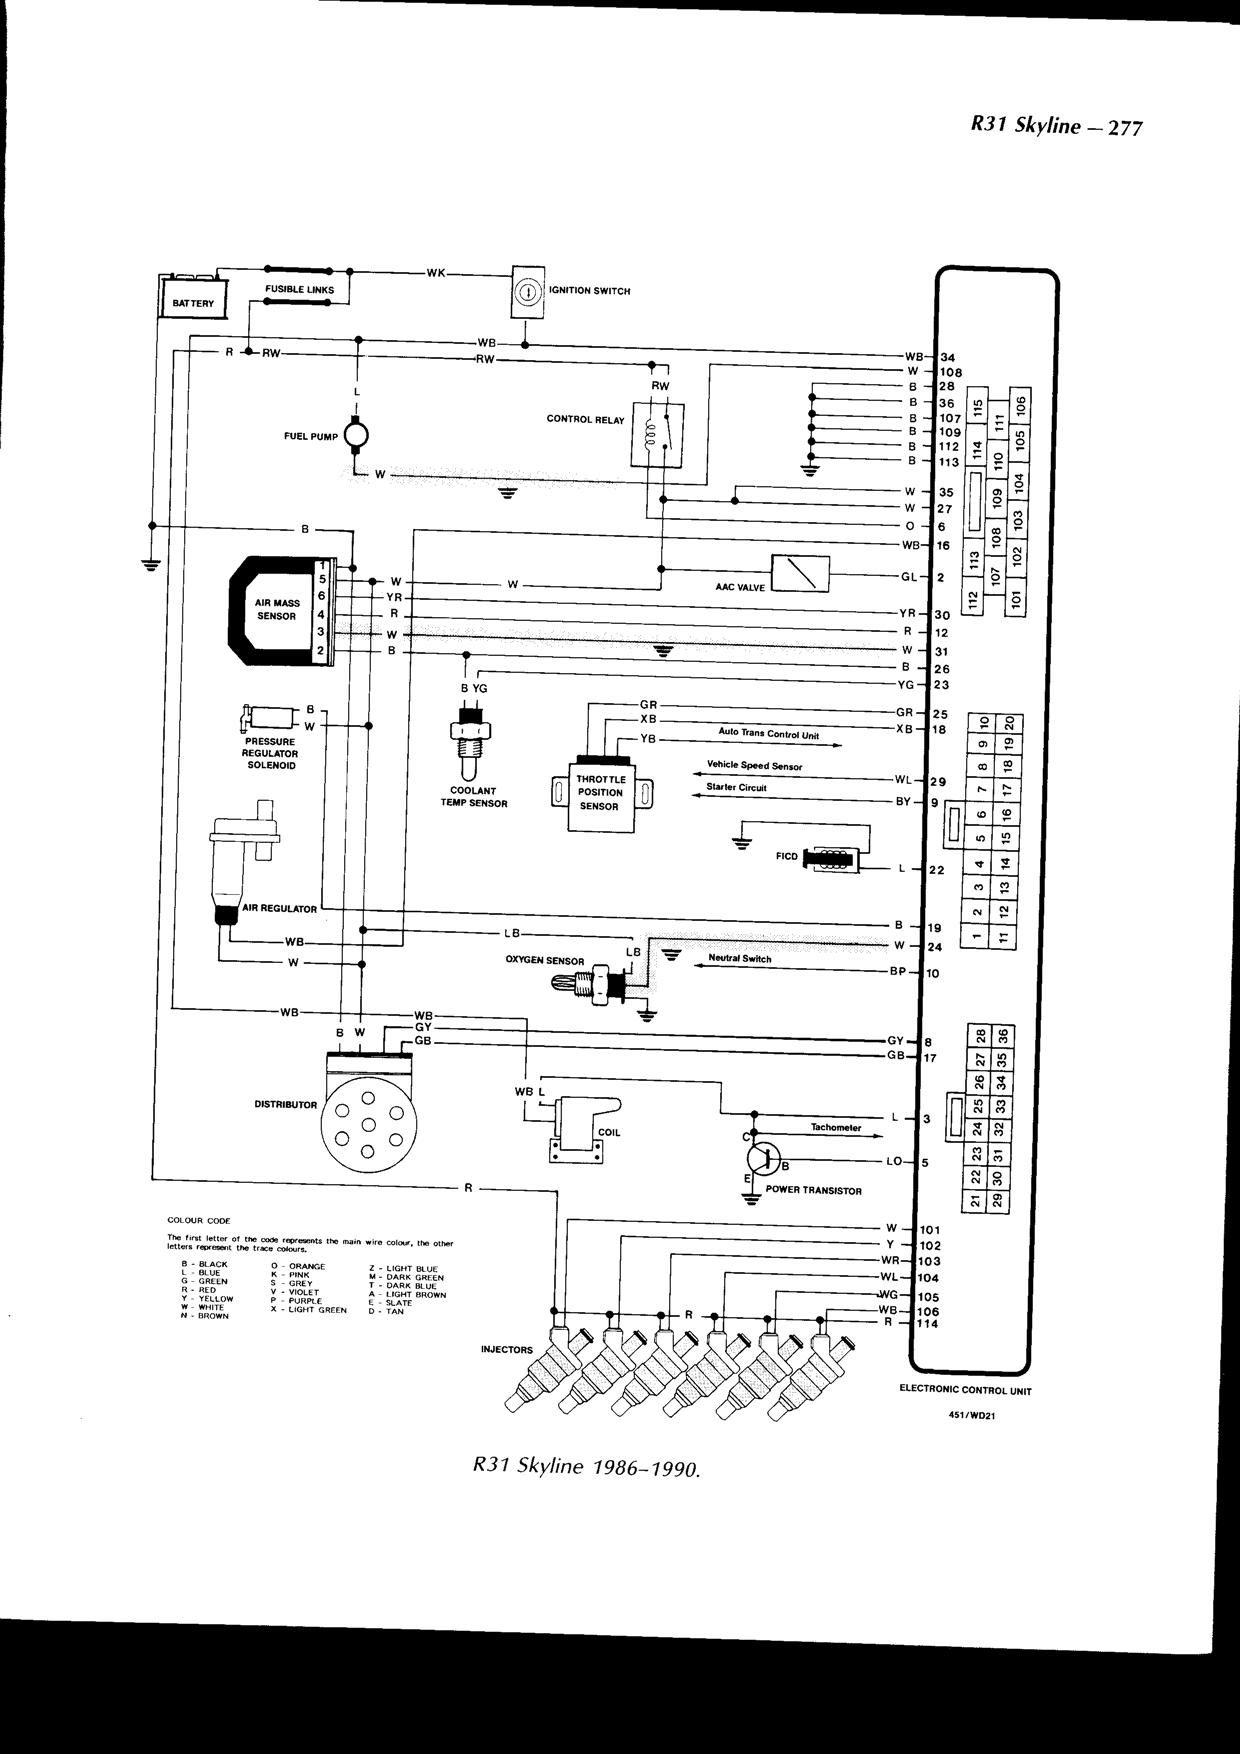 Cd F Bf D Ca C D on 1956 Thunderbird Wiring Diagram